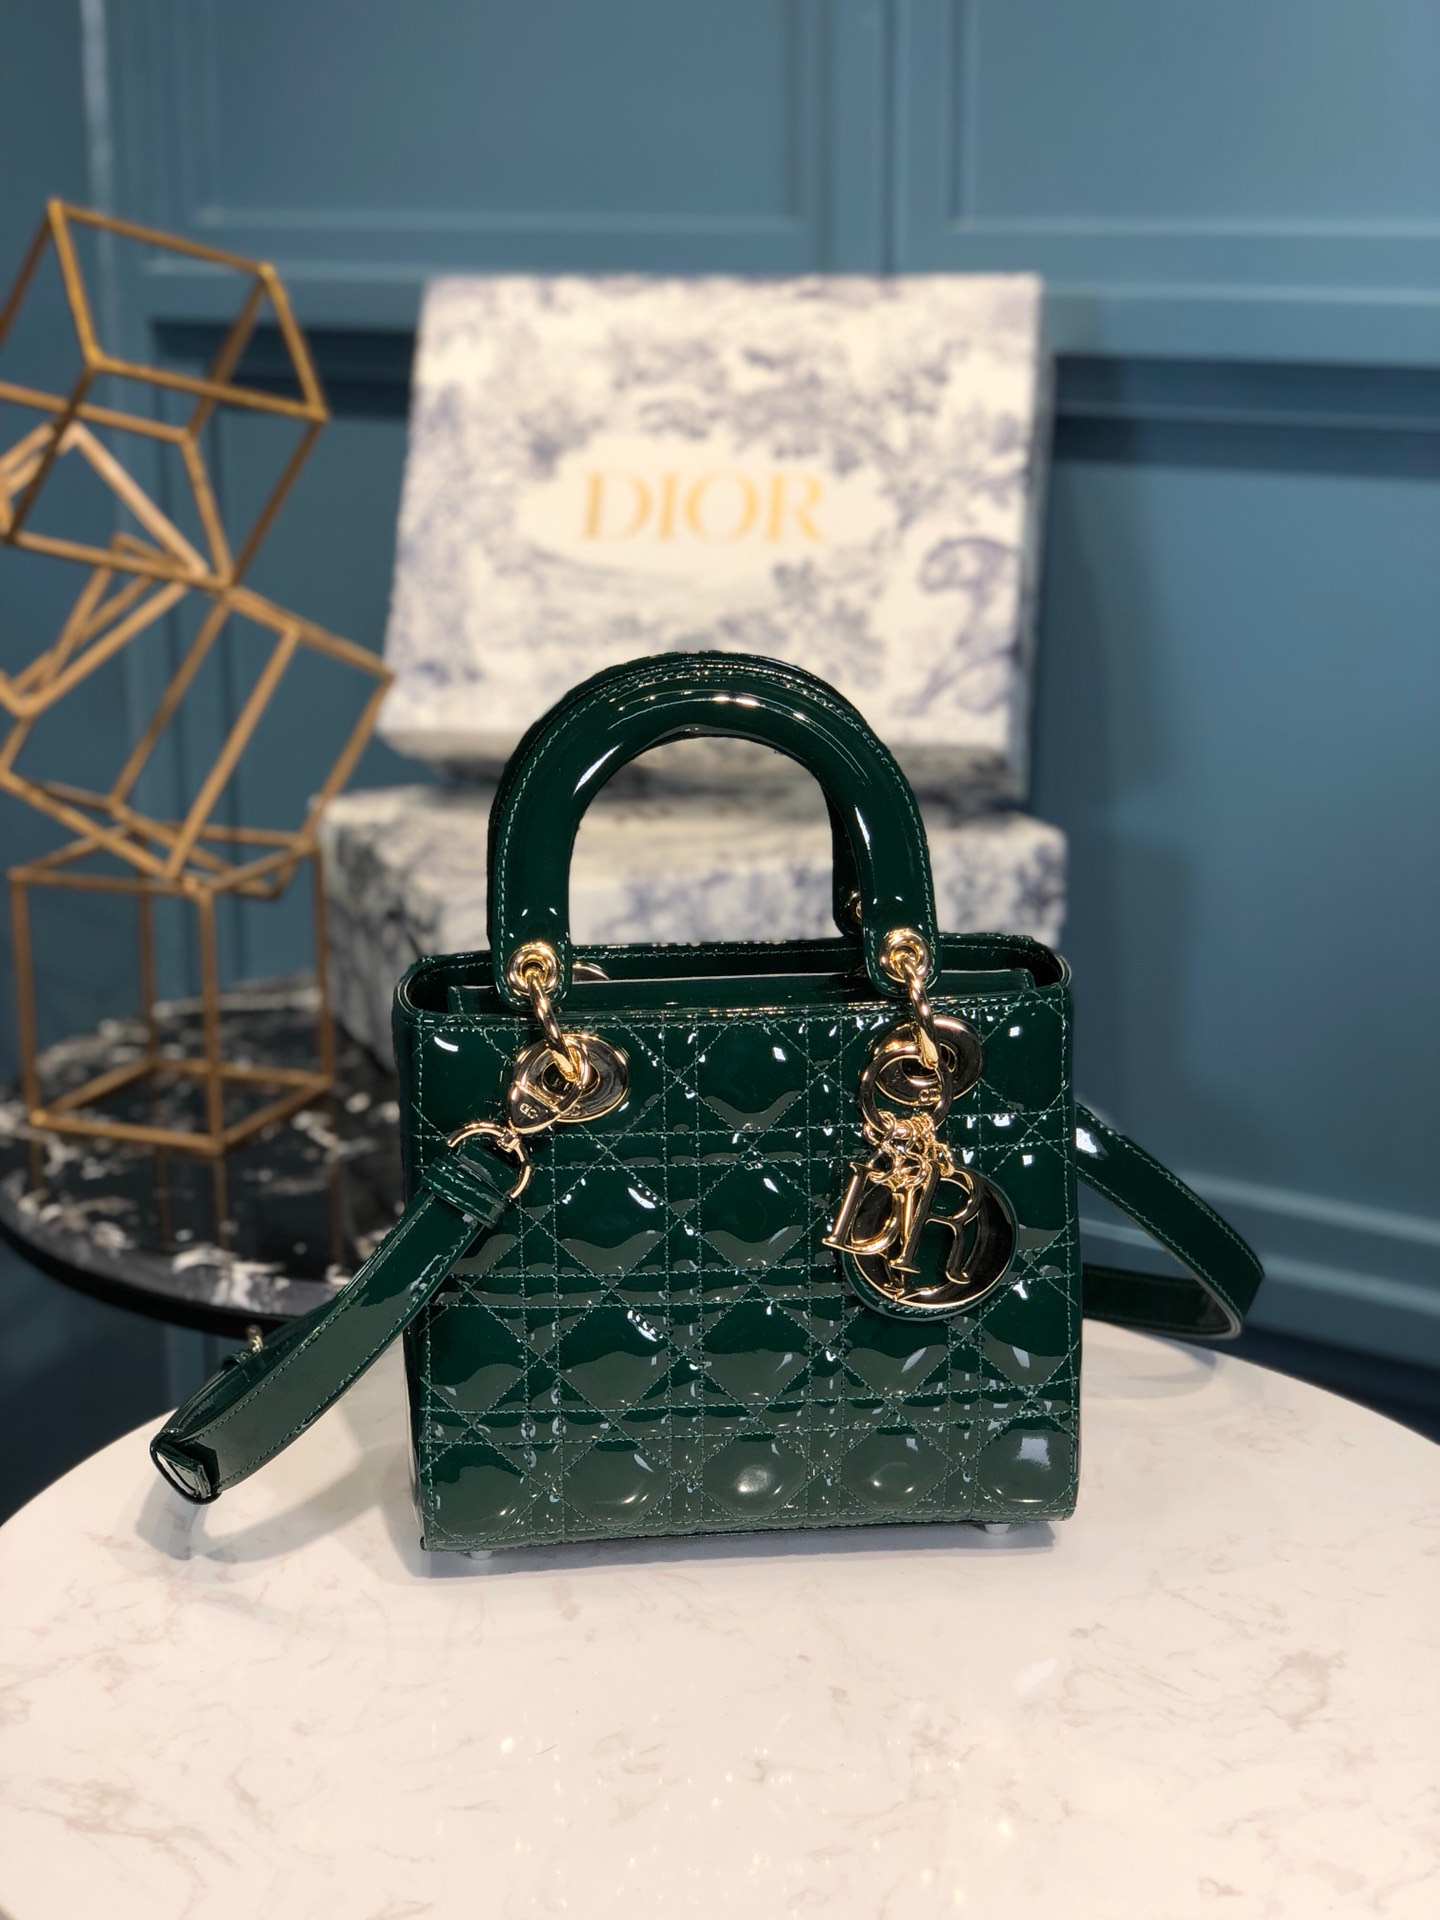 Replica Lady Dior Calfskin Bag Adjustable Shoulder Strap With Gold-Tone Metal Green